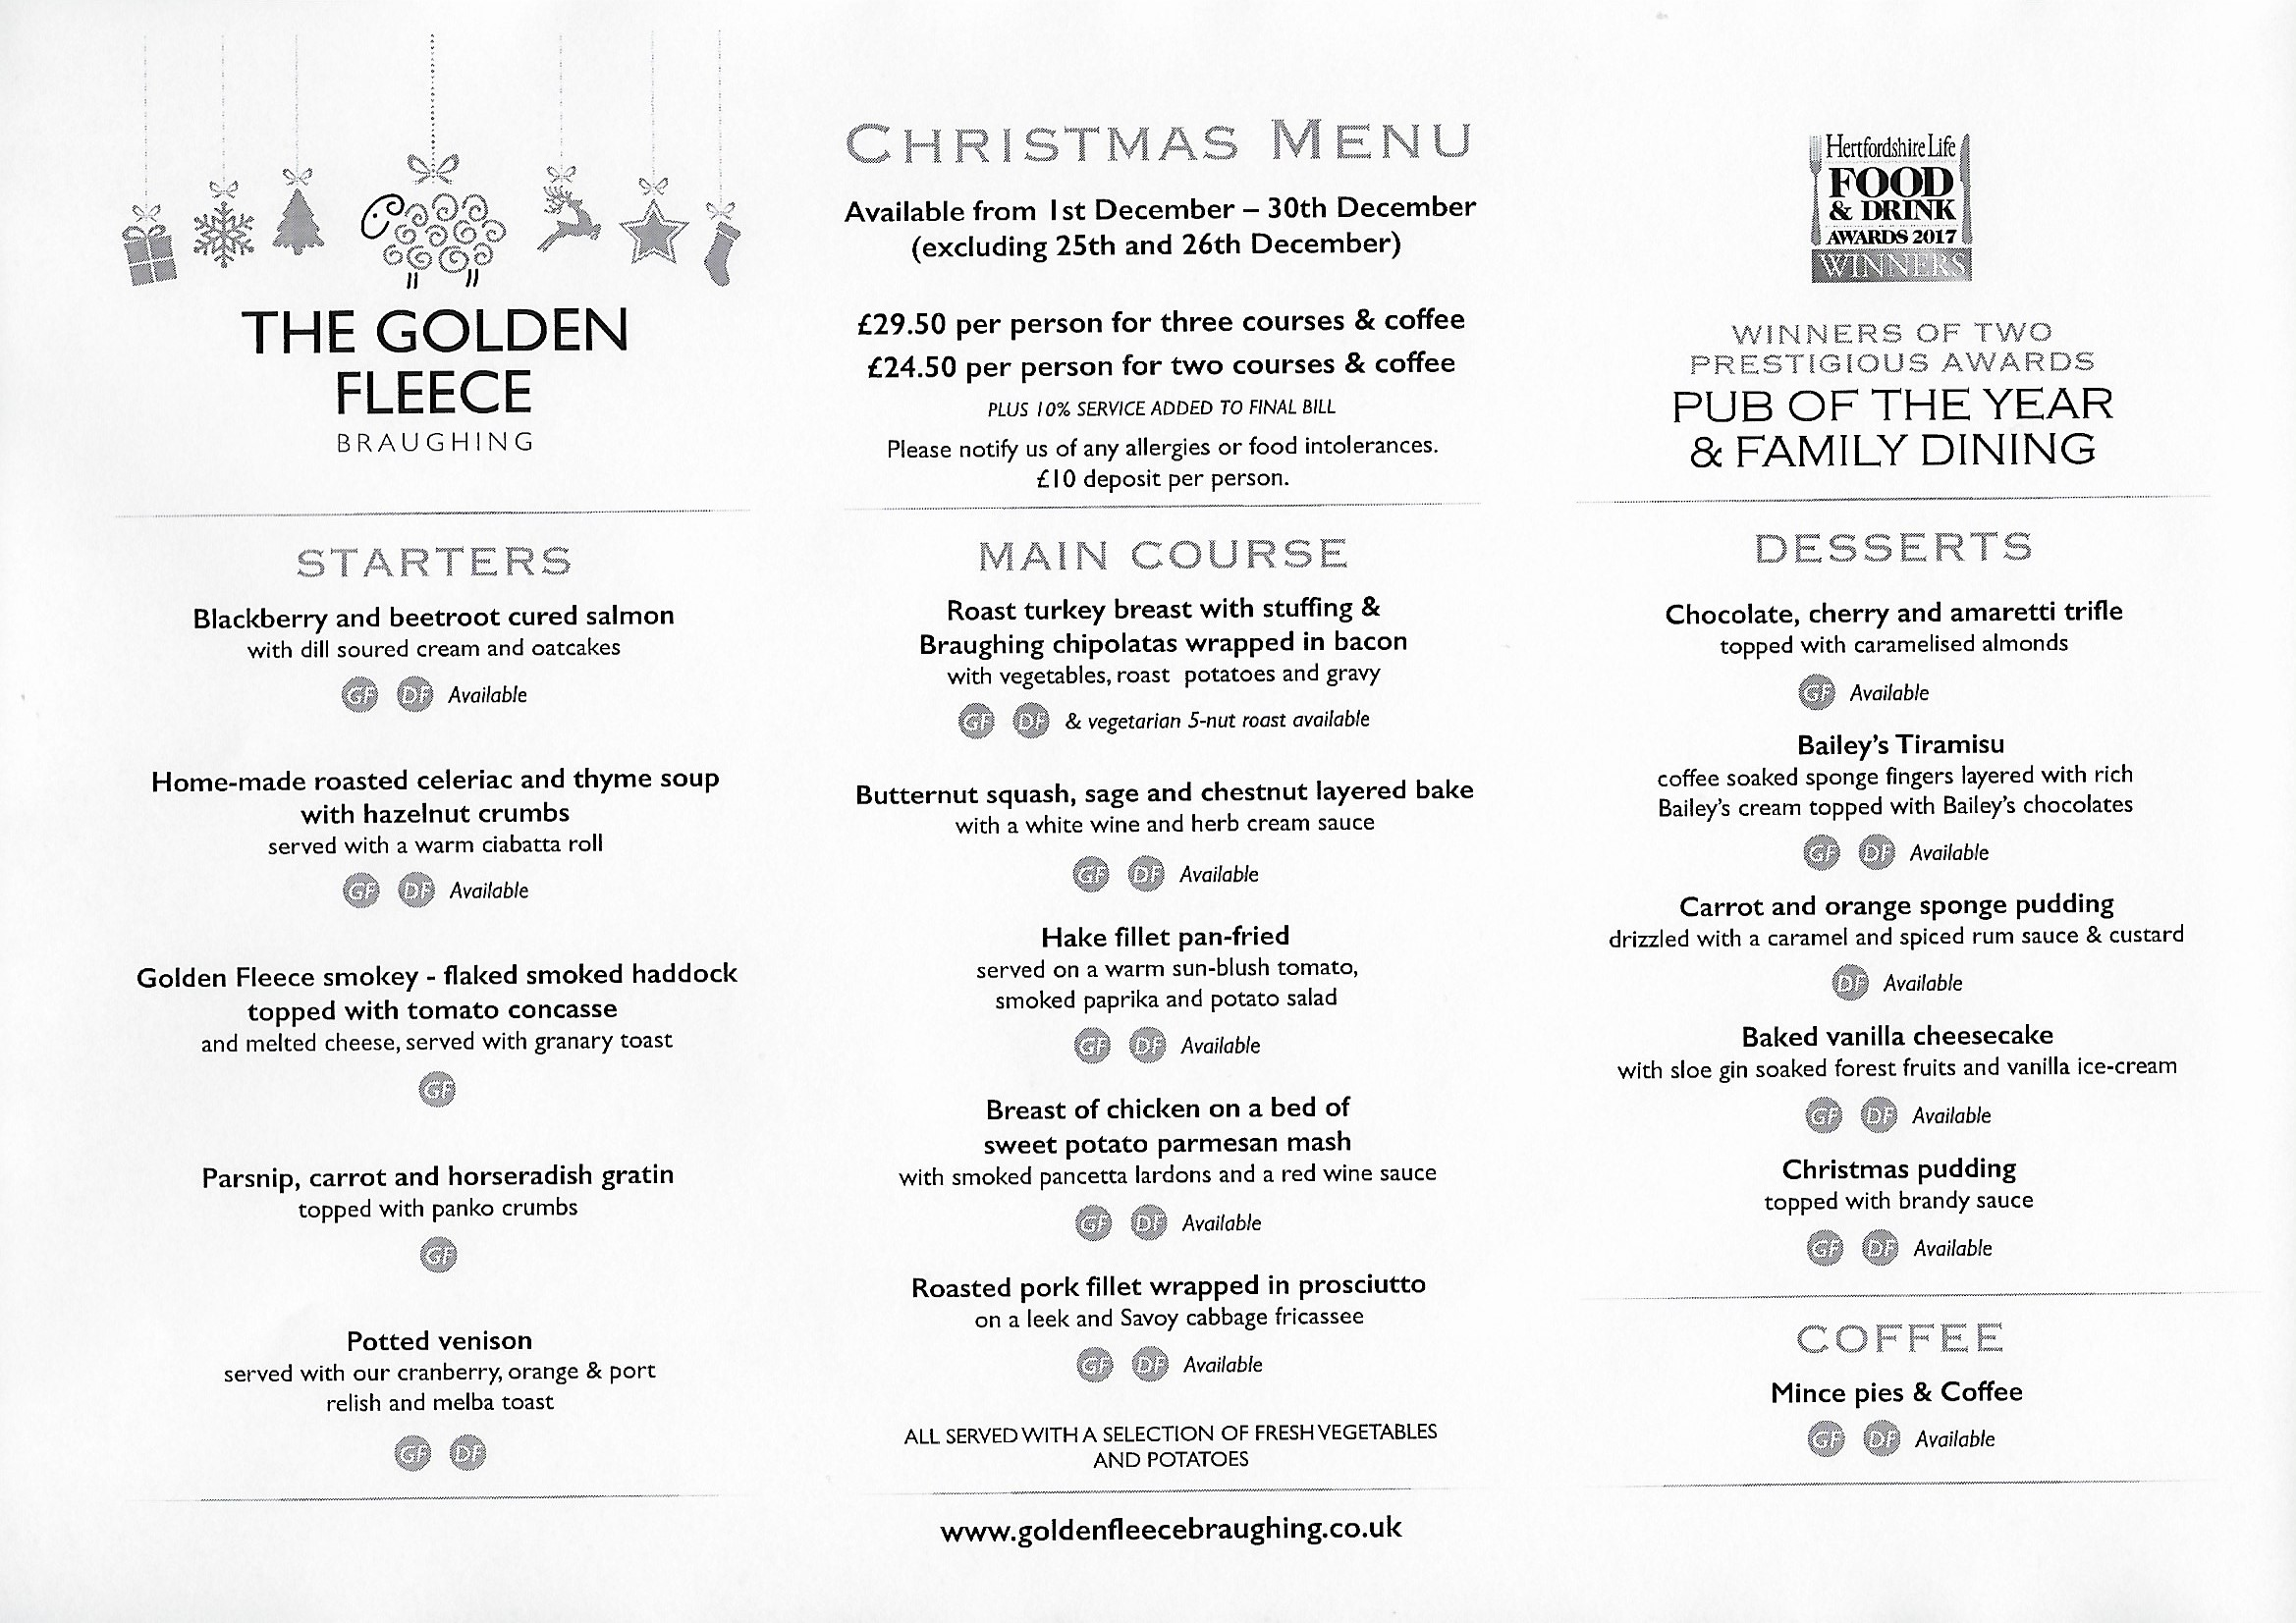 Golden Fleece menu